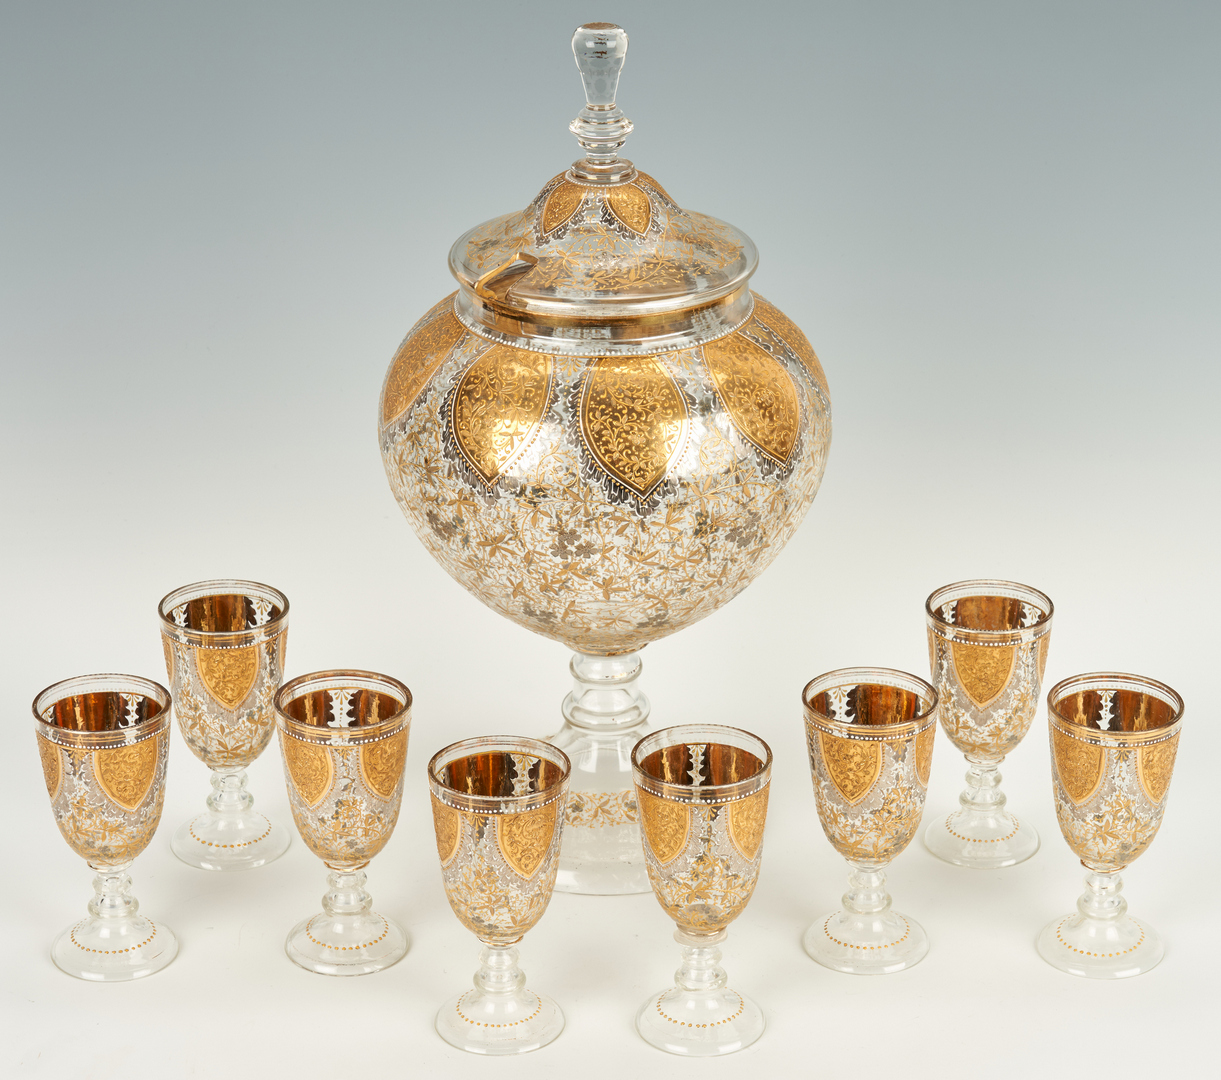 Lot 469: Glass 9-Piece Gilt & Silver Punch Set, attr. Moser